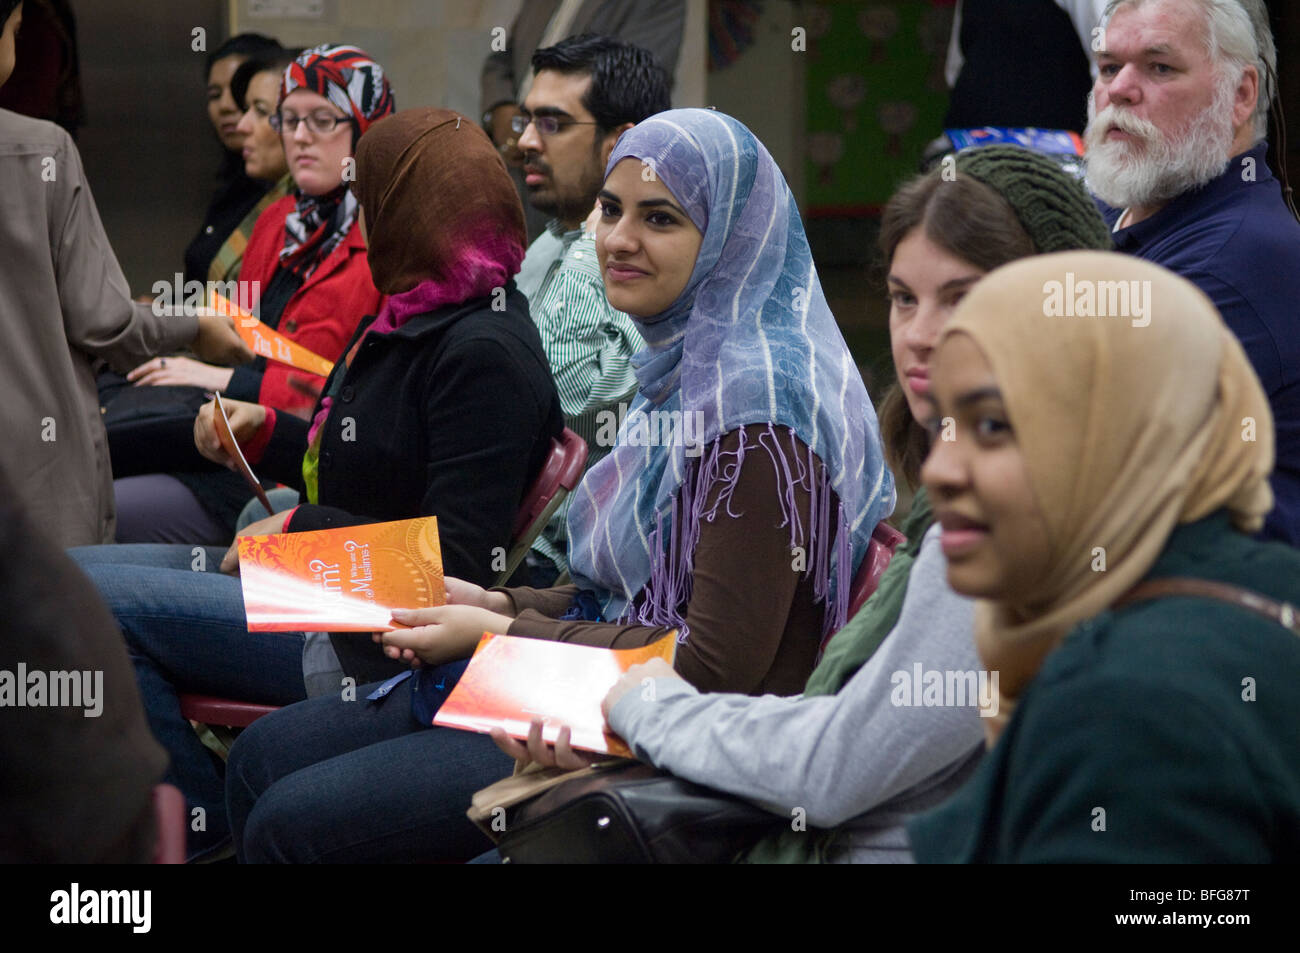 Muslim Center of New York during the Queens Interfaith Unity Walk in Flushing, Queens - Stock Image